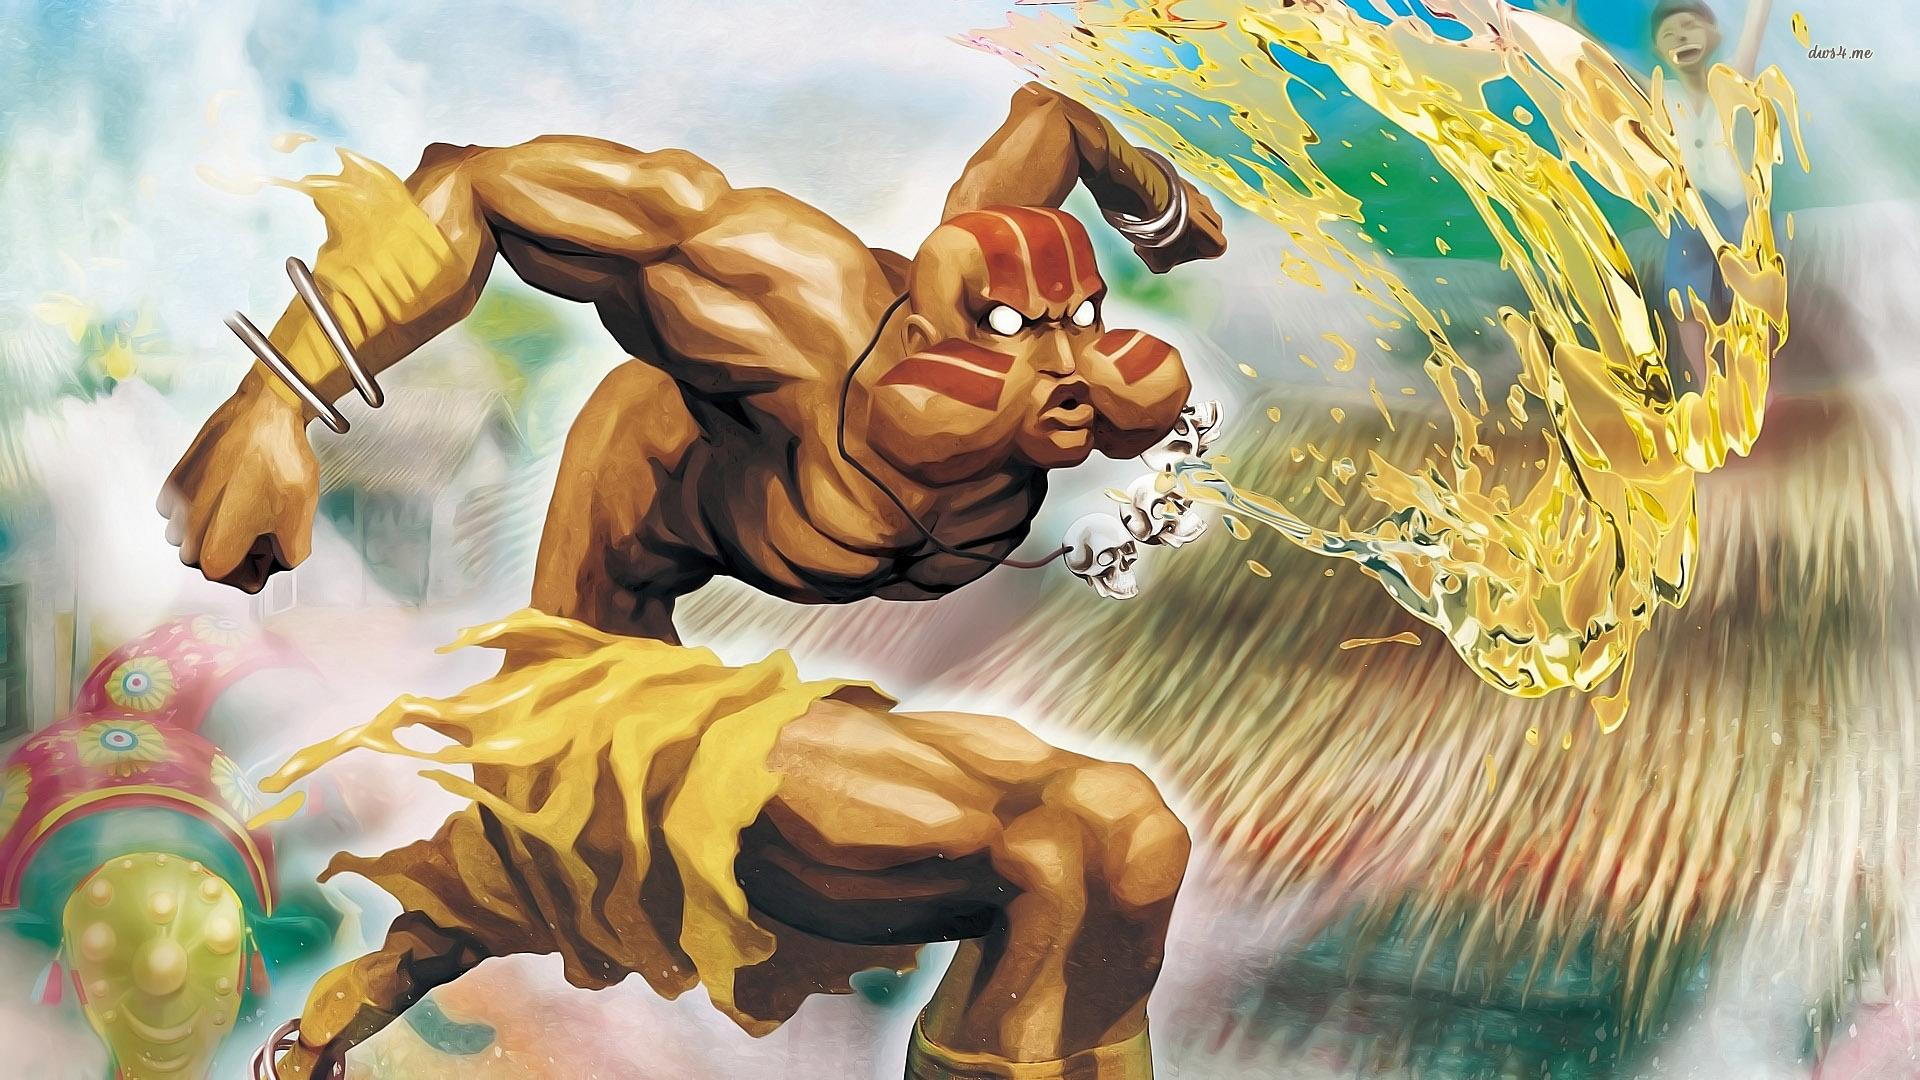 Dhalsim in Super Street Fighter II: The New Challengers wallpapers